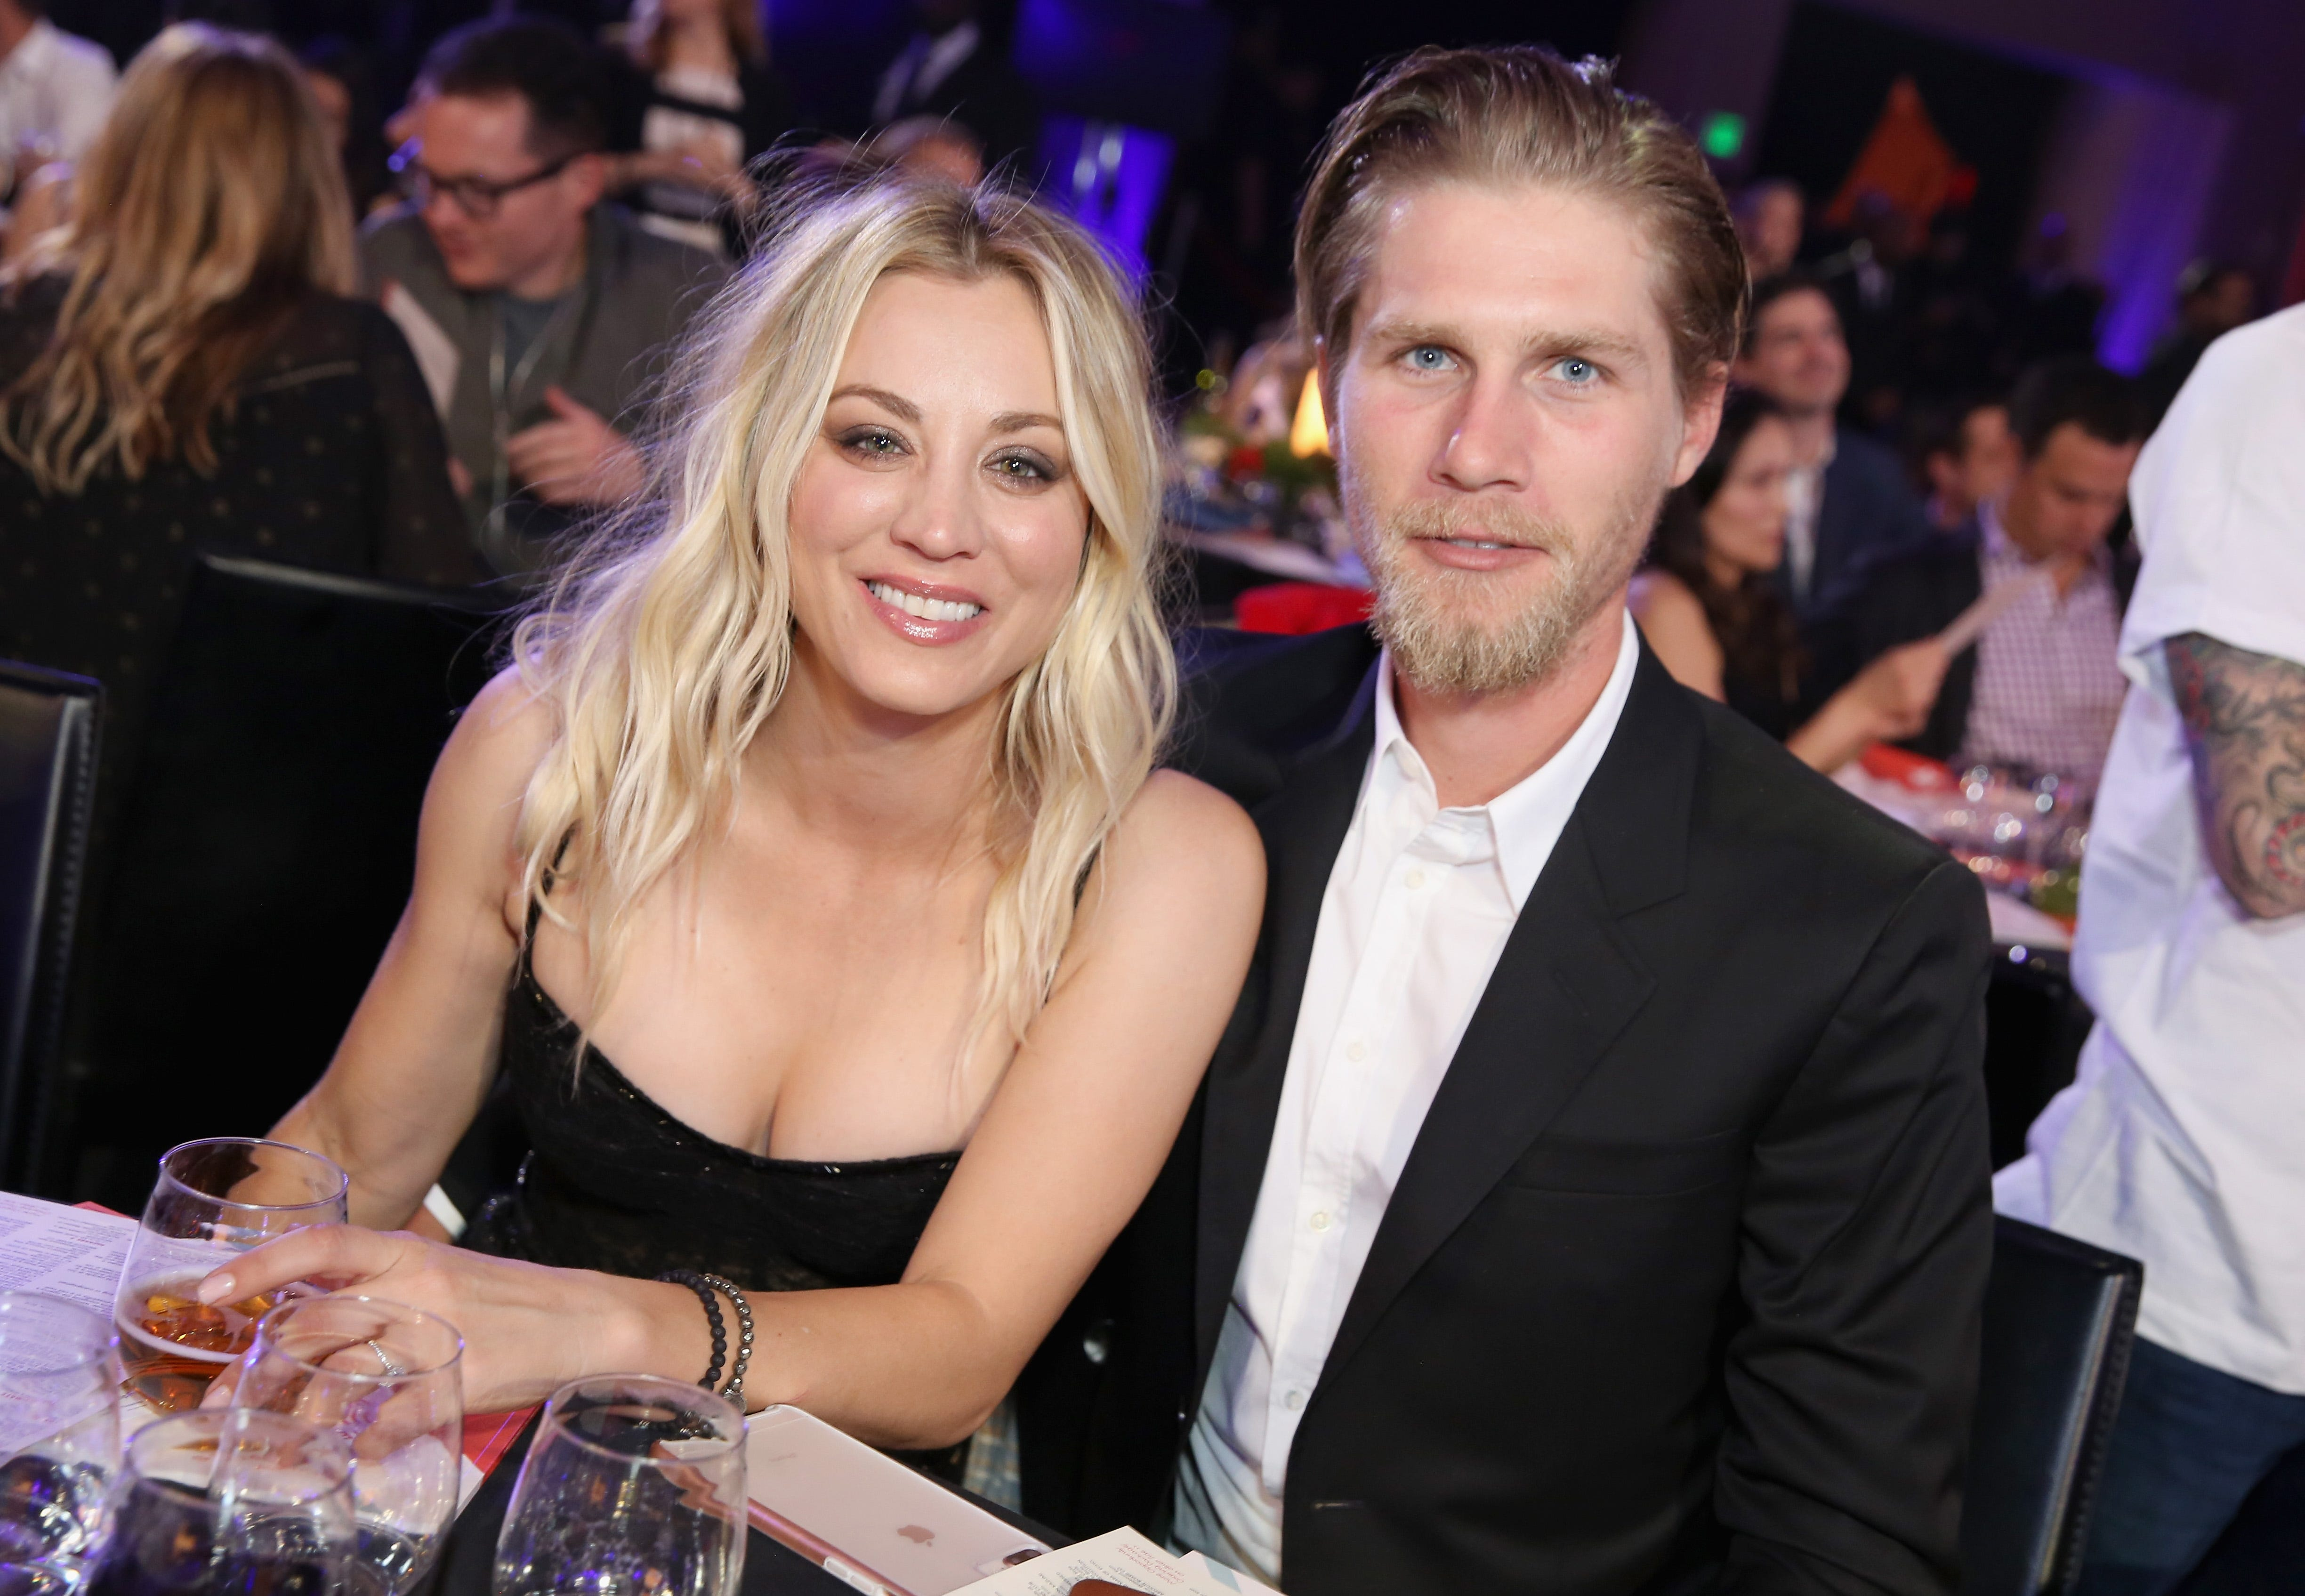 sc 1 st  USA Today & Kaley Cuoco recovers from shoulder surgery five days after wedding